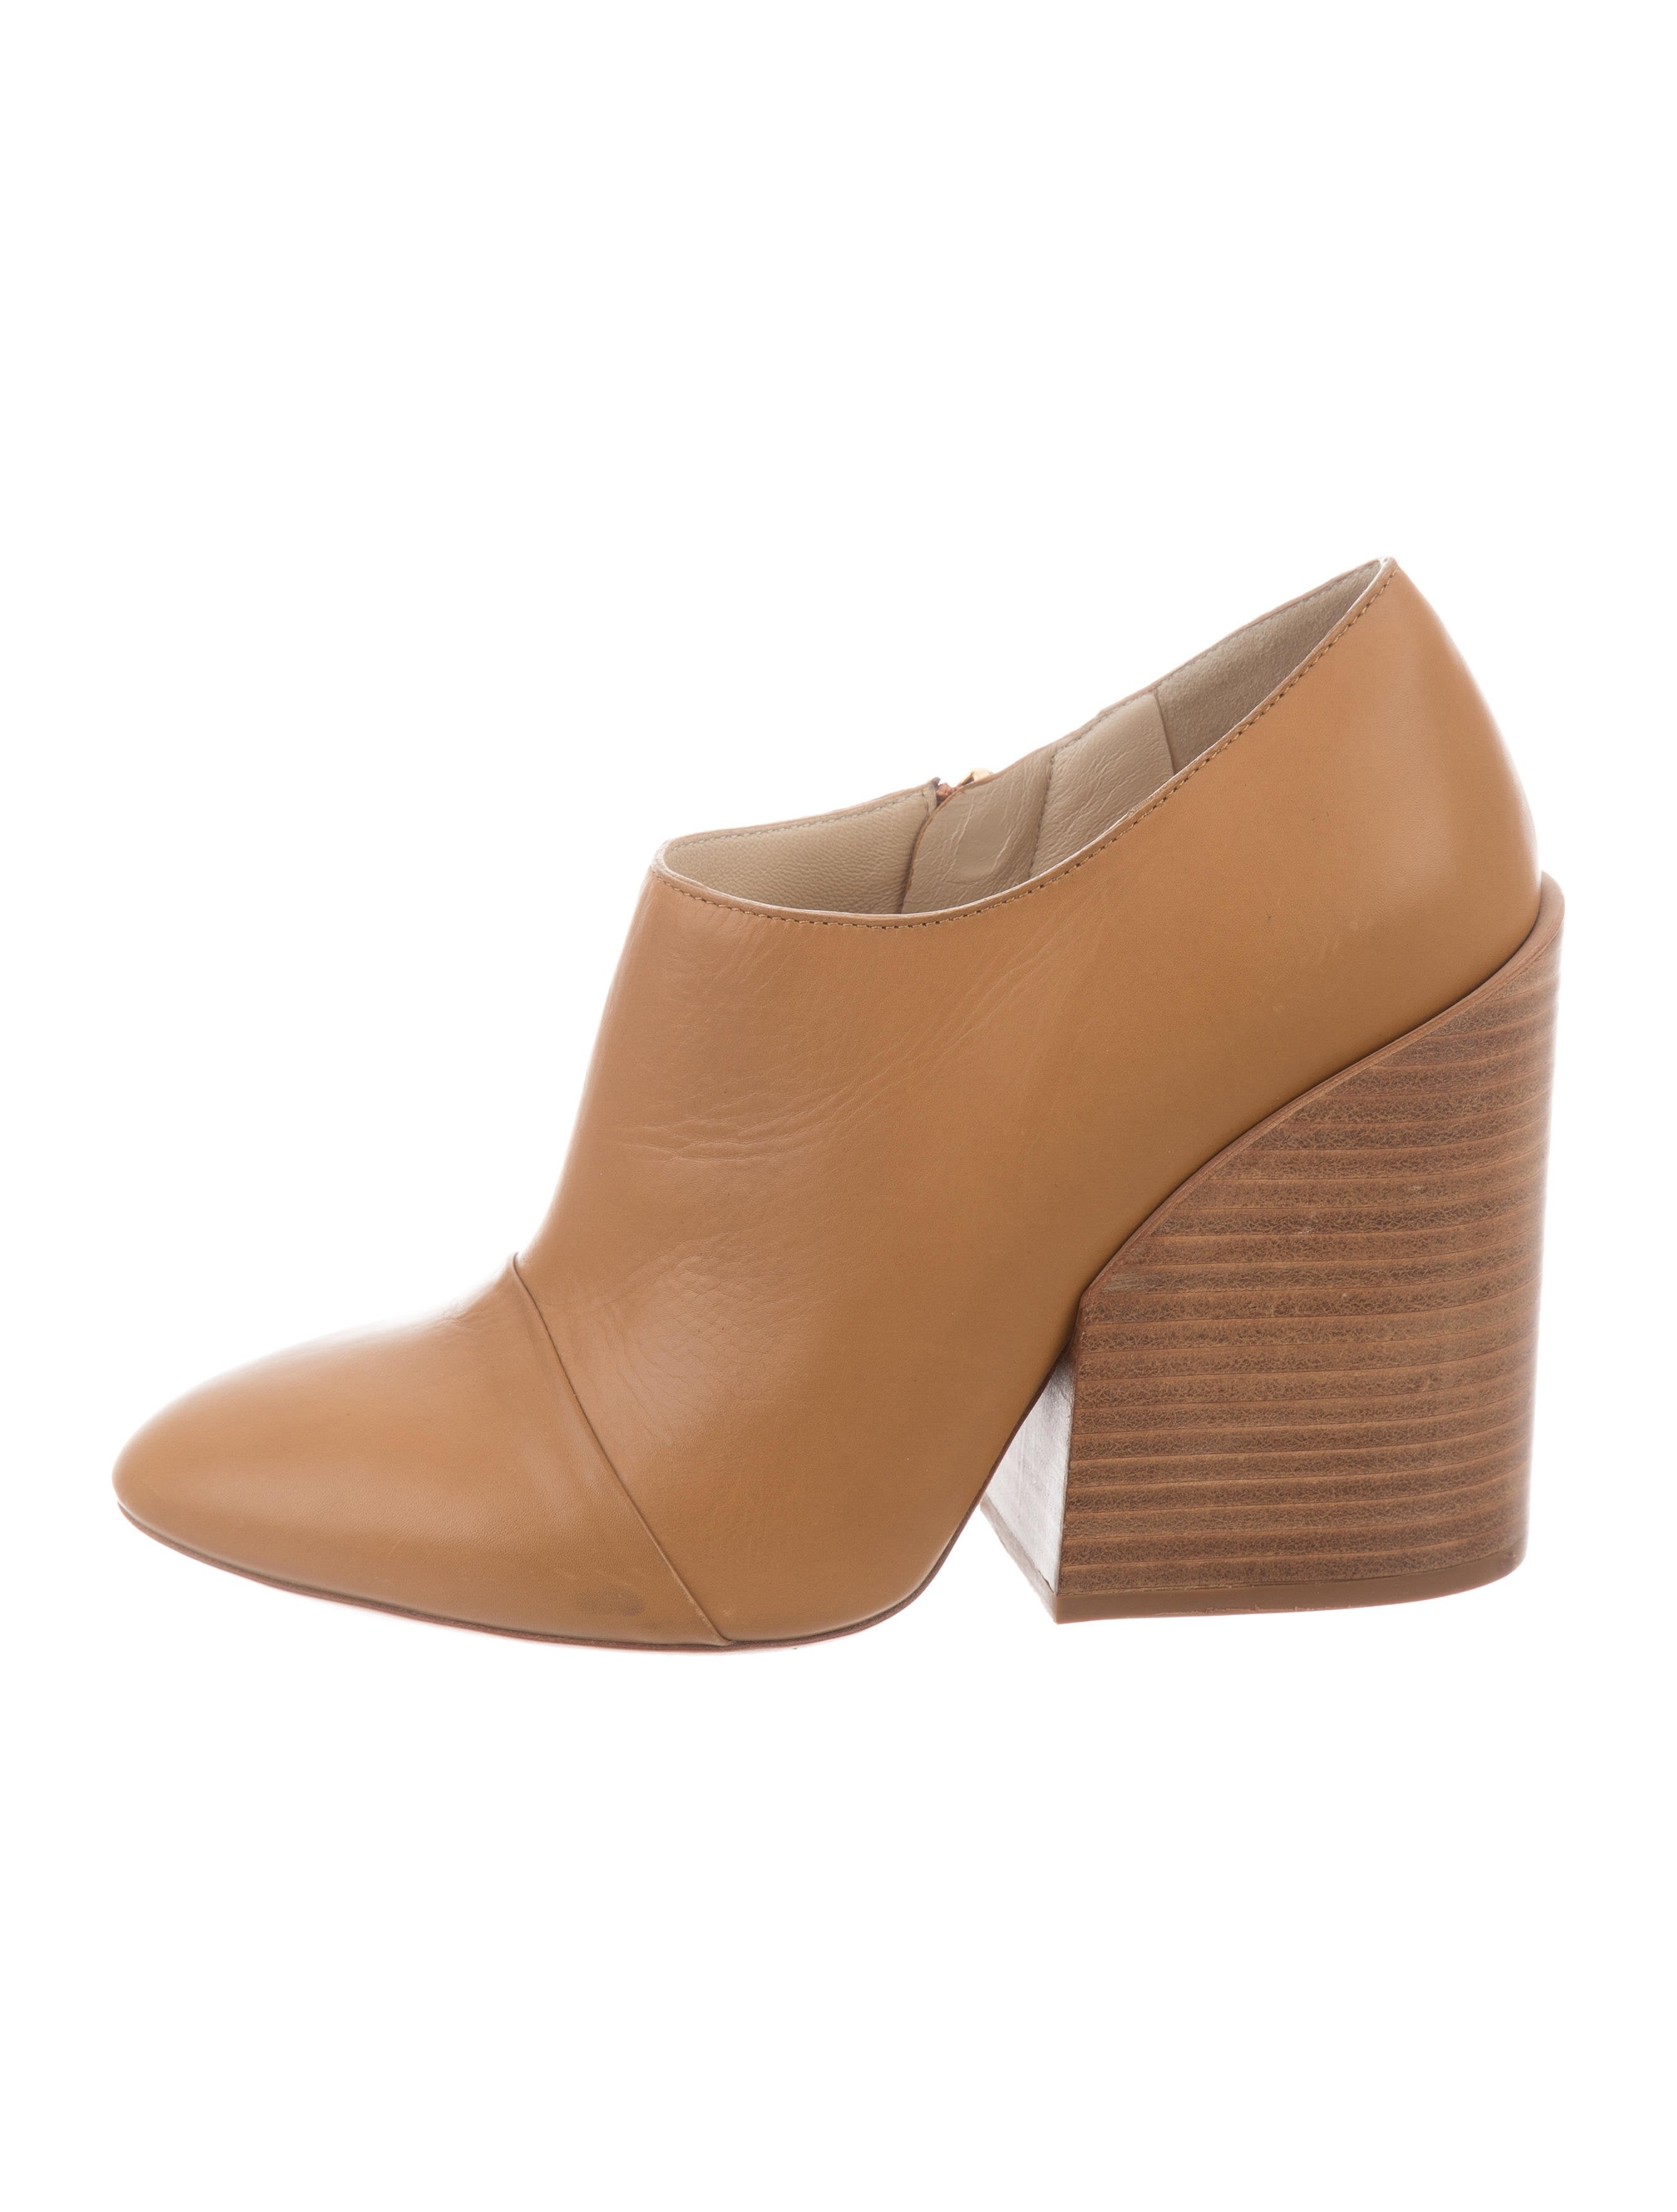 ebay online buy cheap best prices Chloé Stabio Leather Booties outlet best place cheap discount sale oGjhGCQ